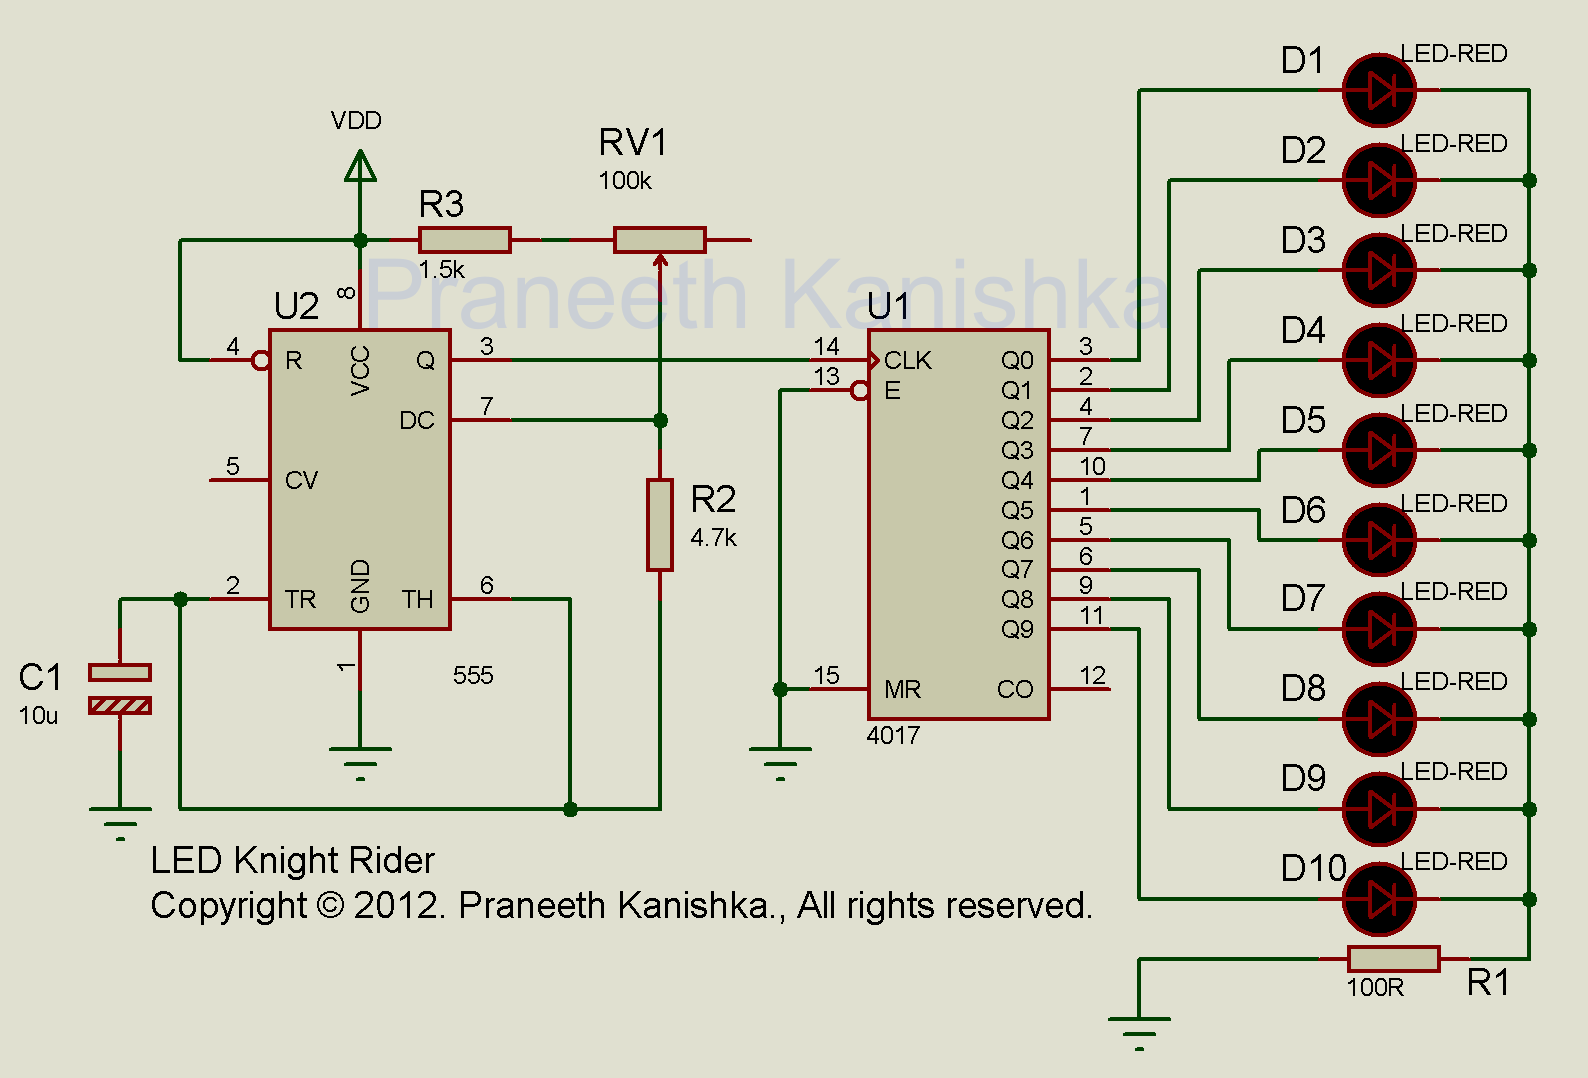 medium resolution of 11 led knight rider project circuit diagram wiring diagram yer 4017 led knight rider running light circuit diagram circuit wiring